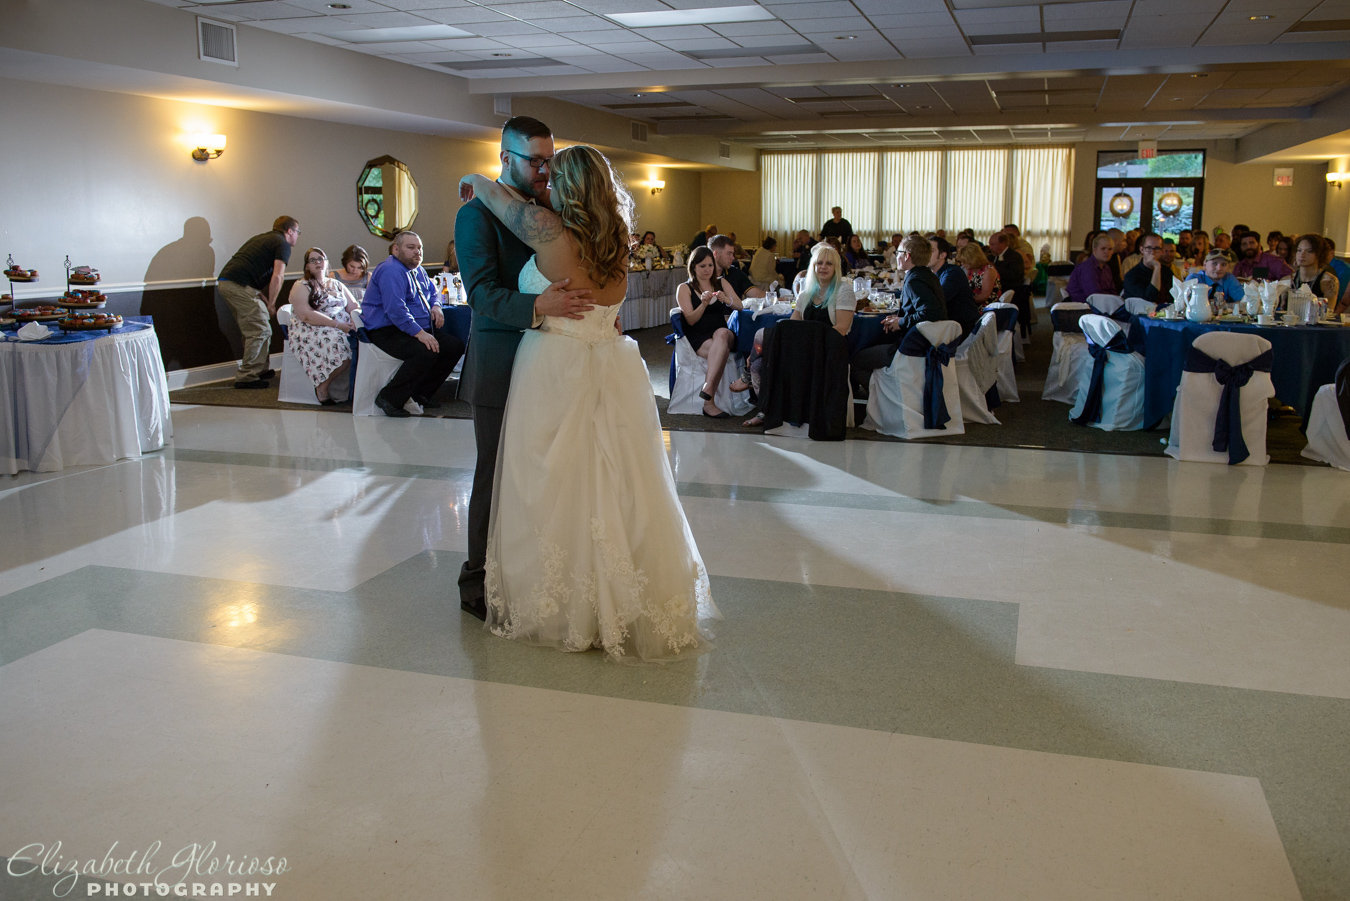 Zakovec_Wedding_Glorioso_Photography_Cleveland-142